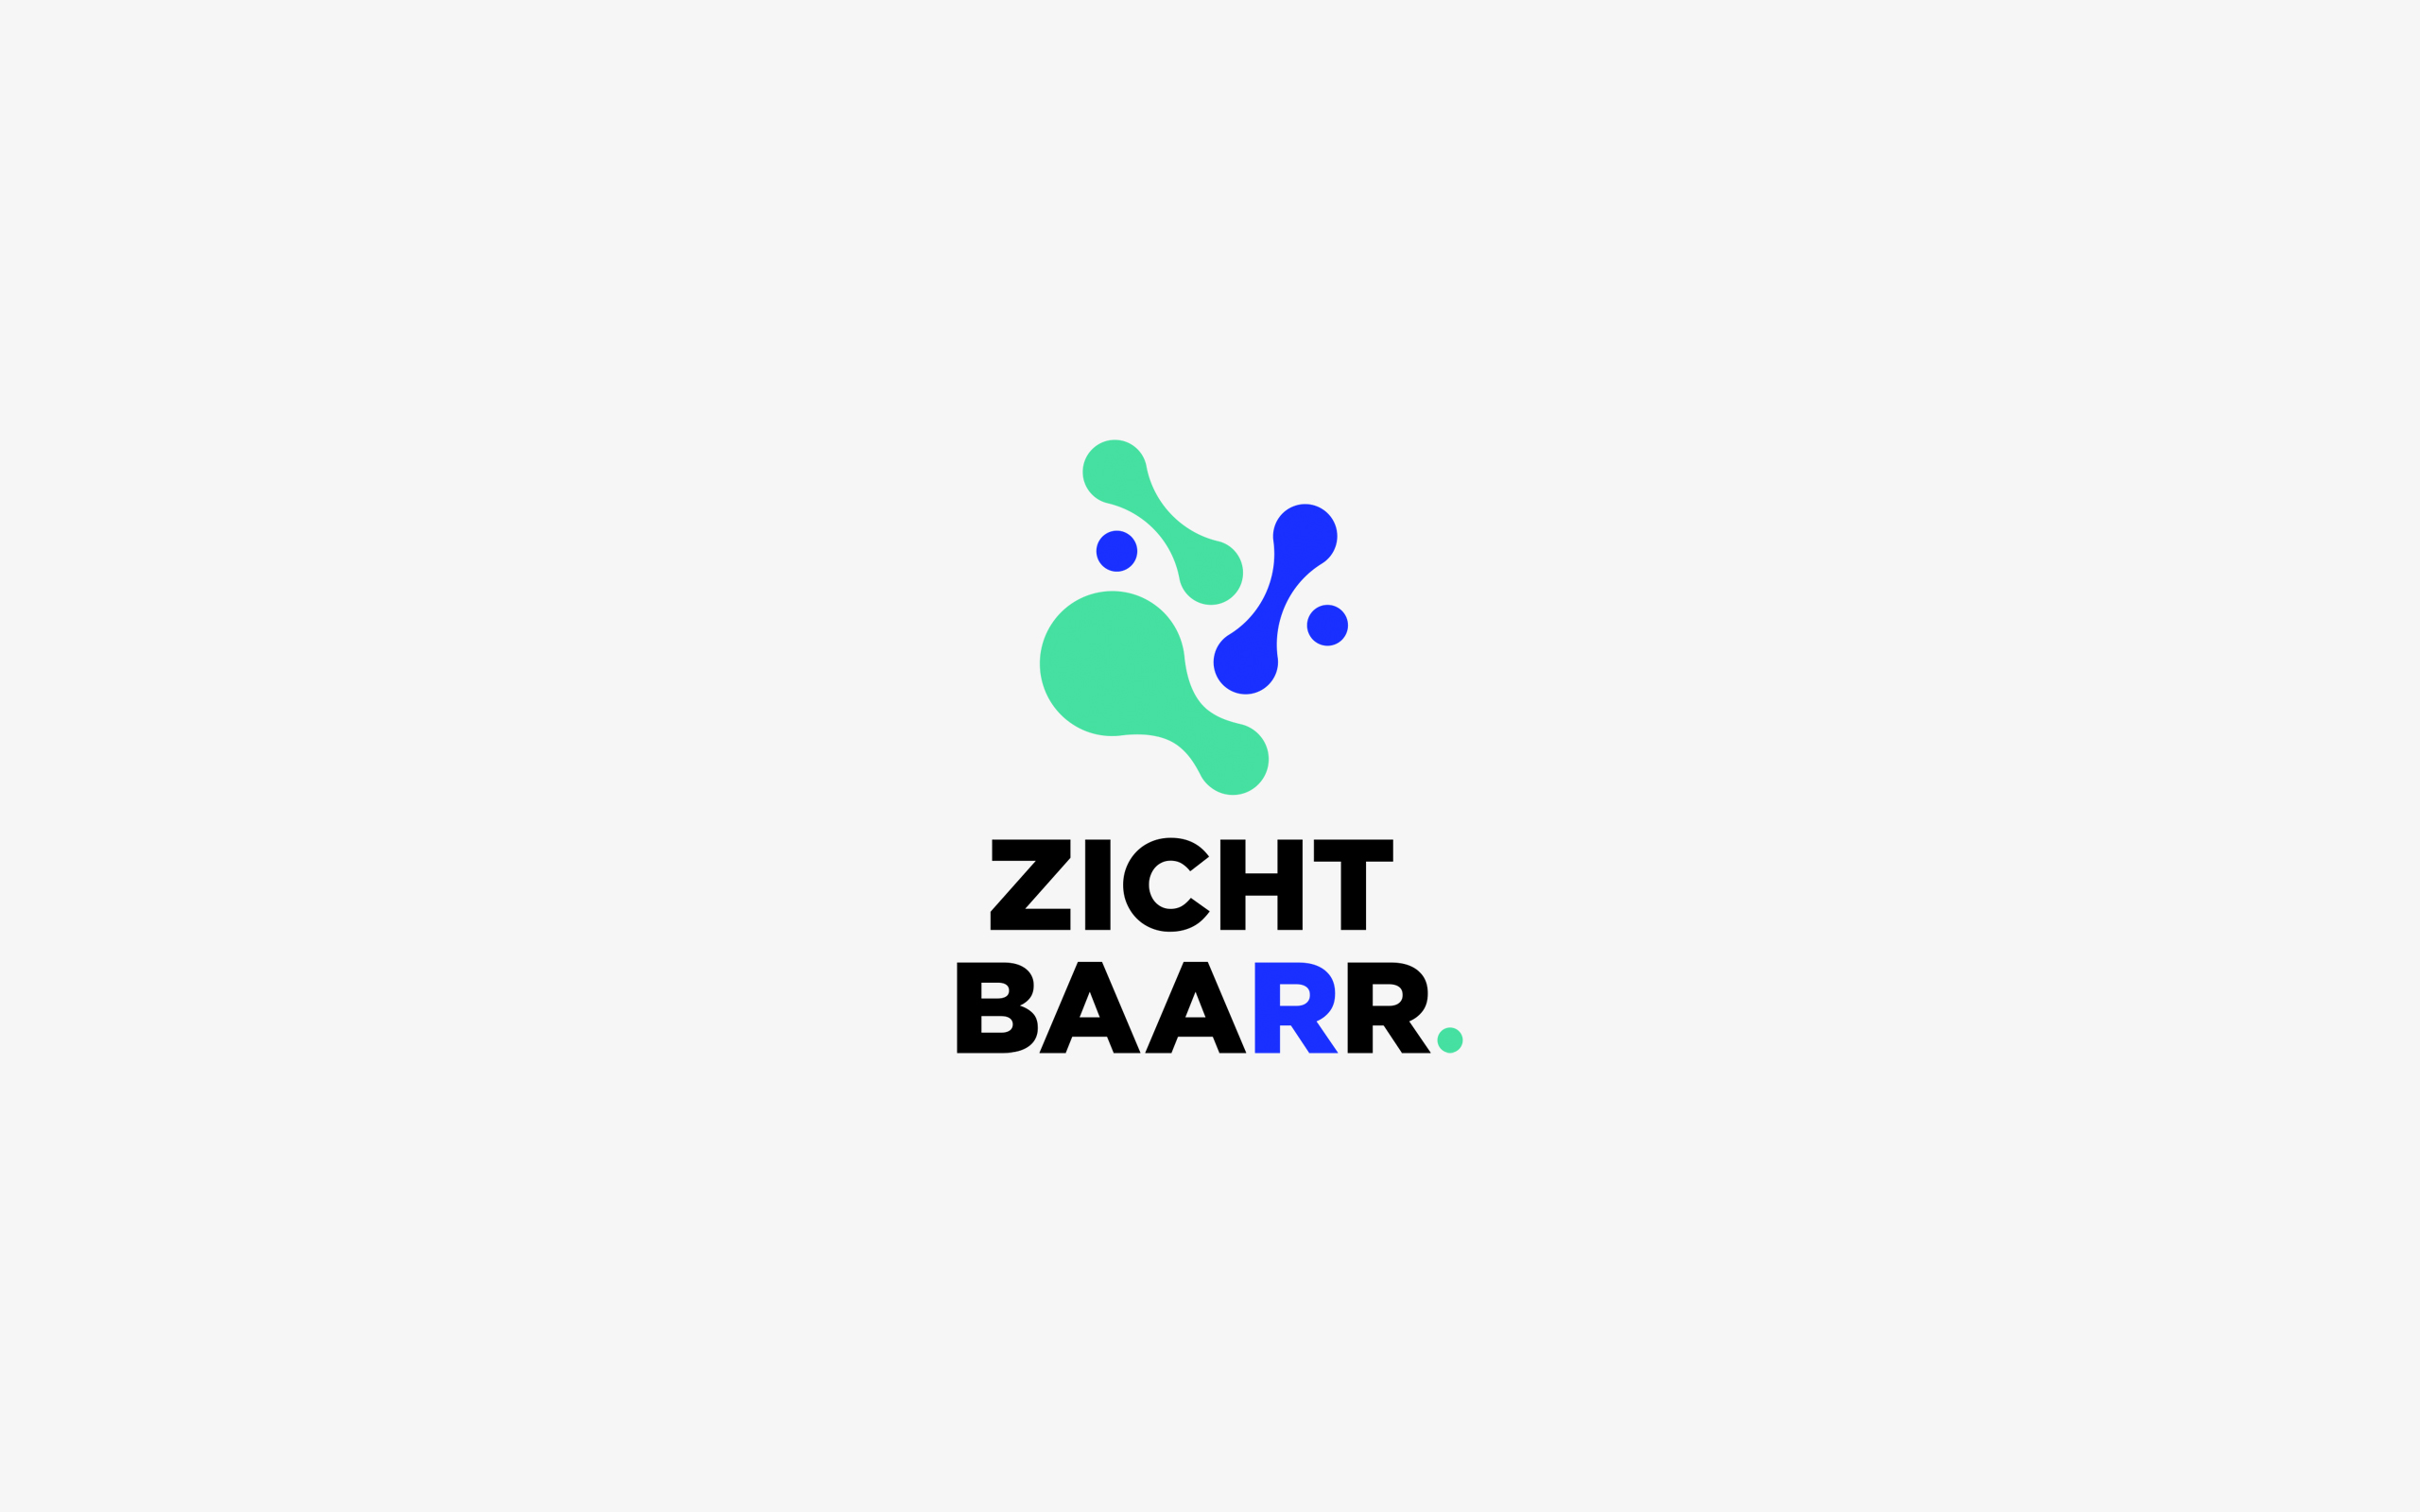 Logo design for Zichtbaarr